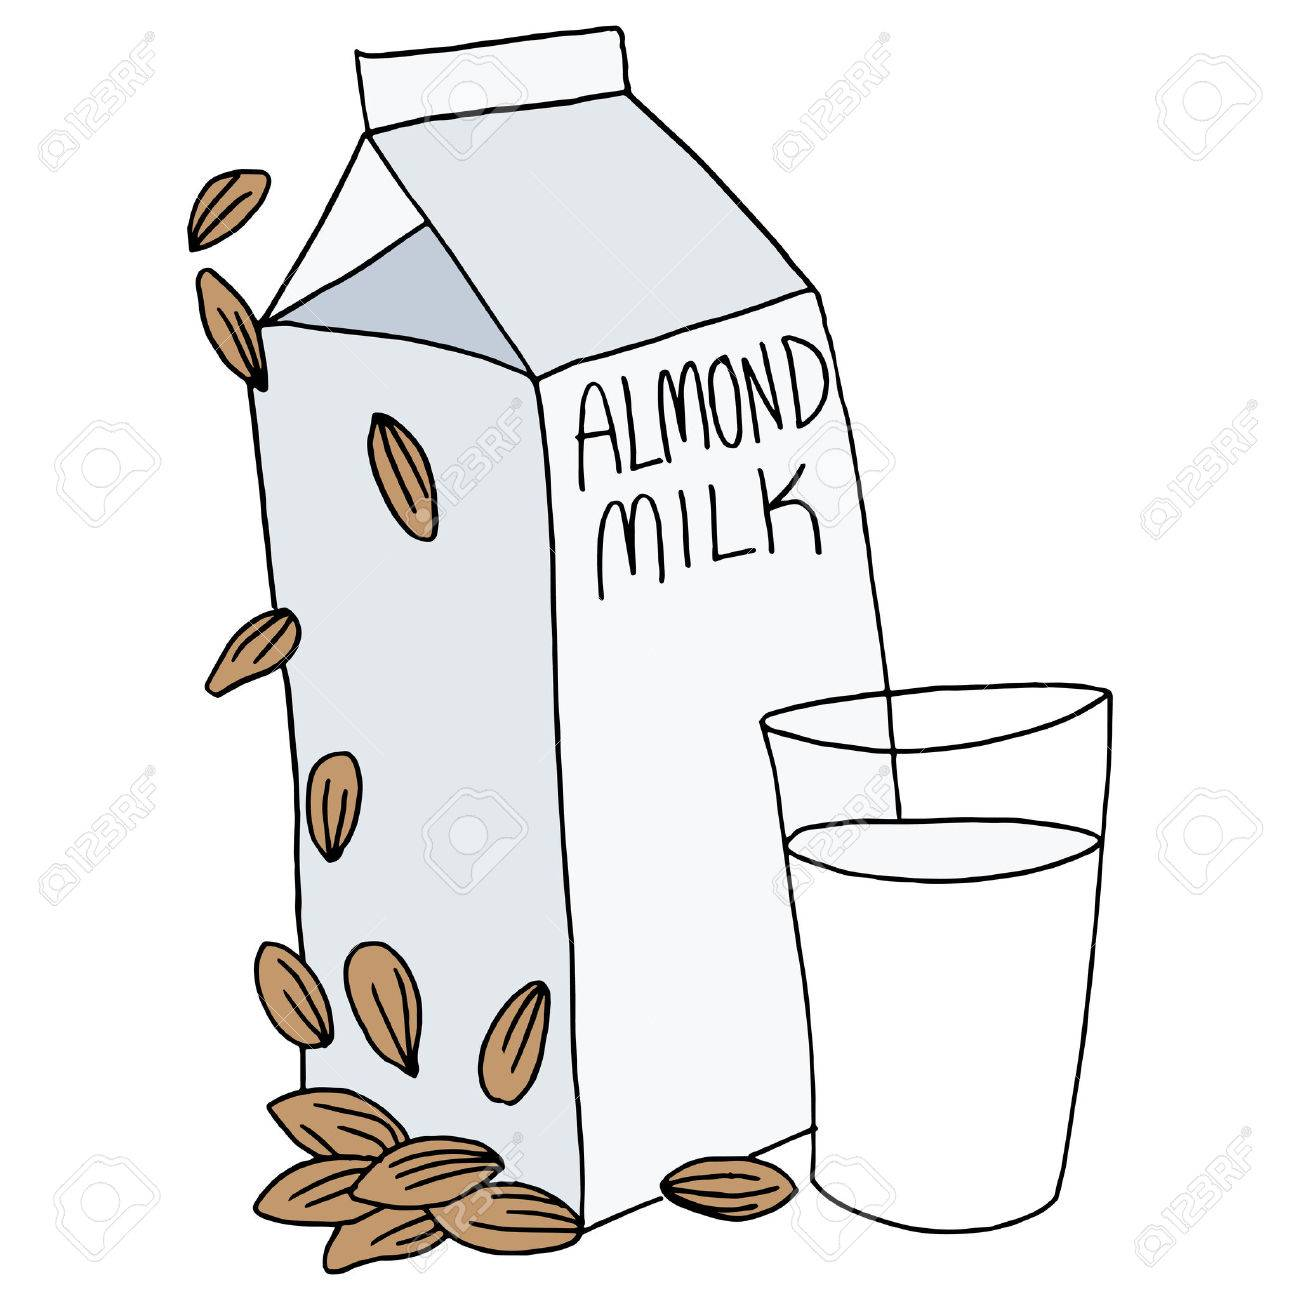 hight resolution of an image of an almond milk carton and glass stock vector 27363665